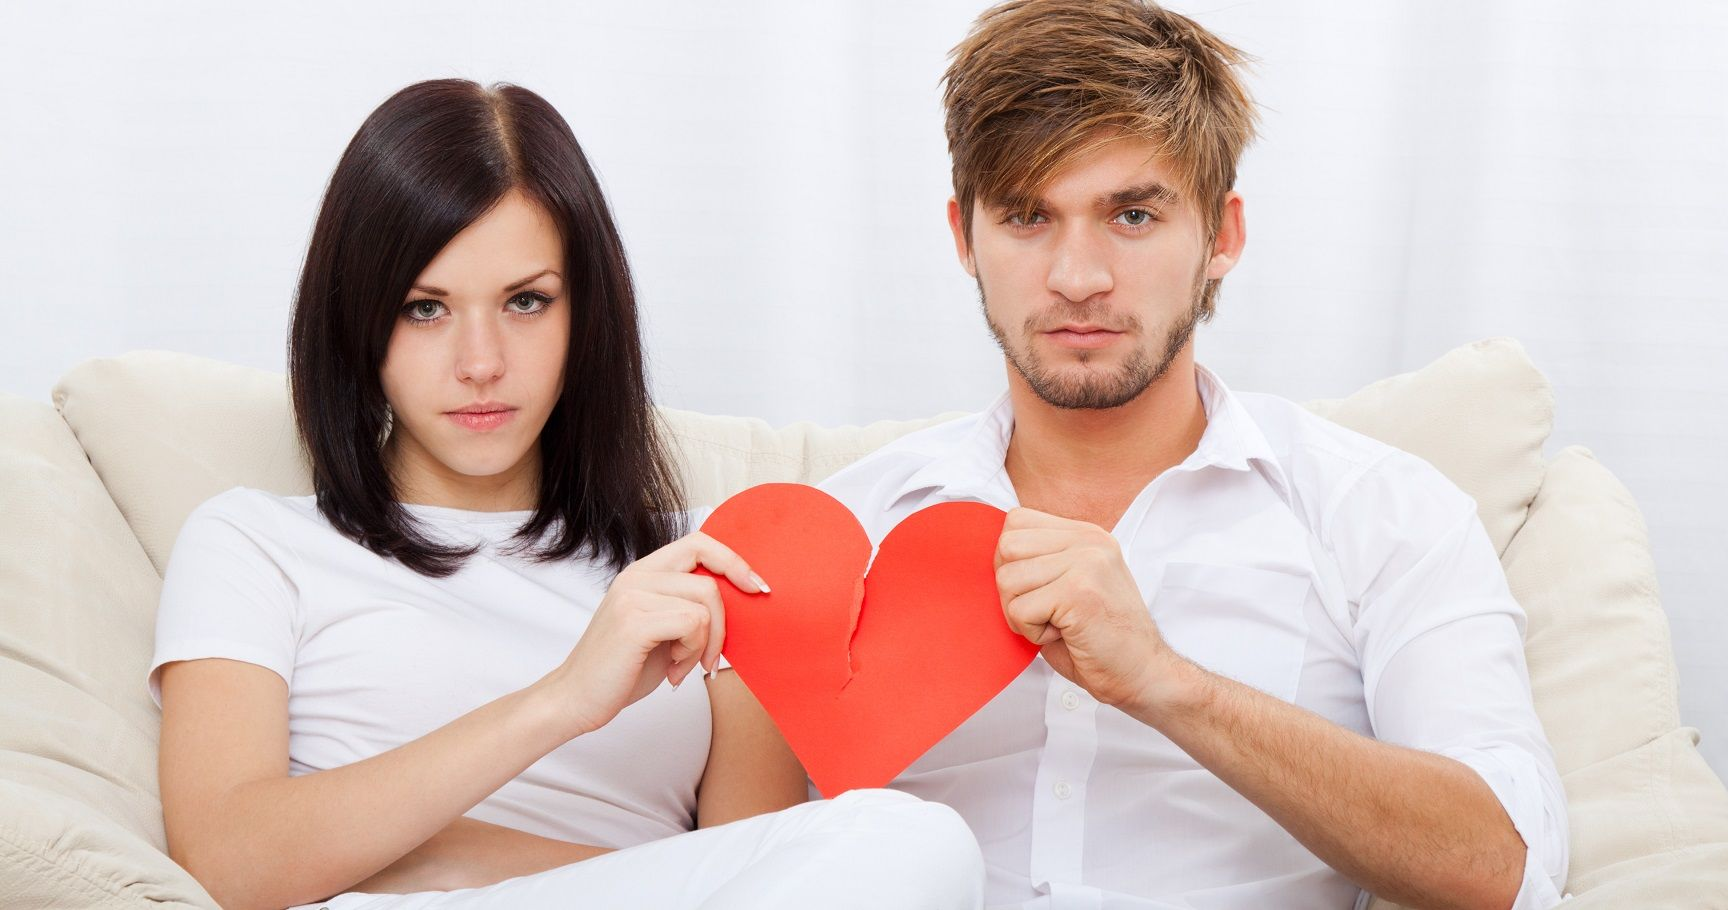 The 10 Biggest Mistakes To Avoid This Valentine's Day